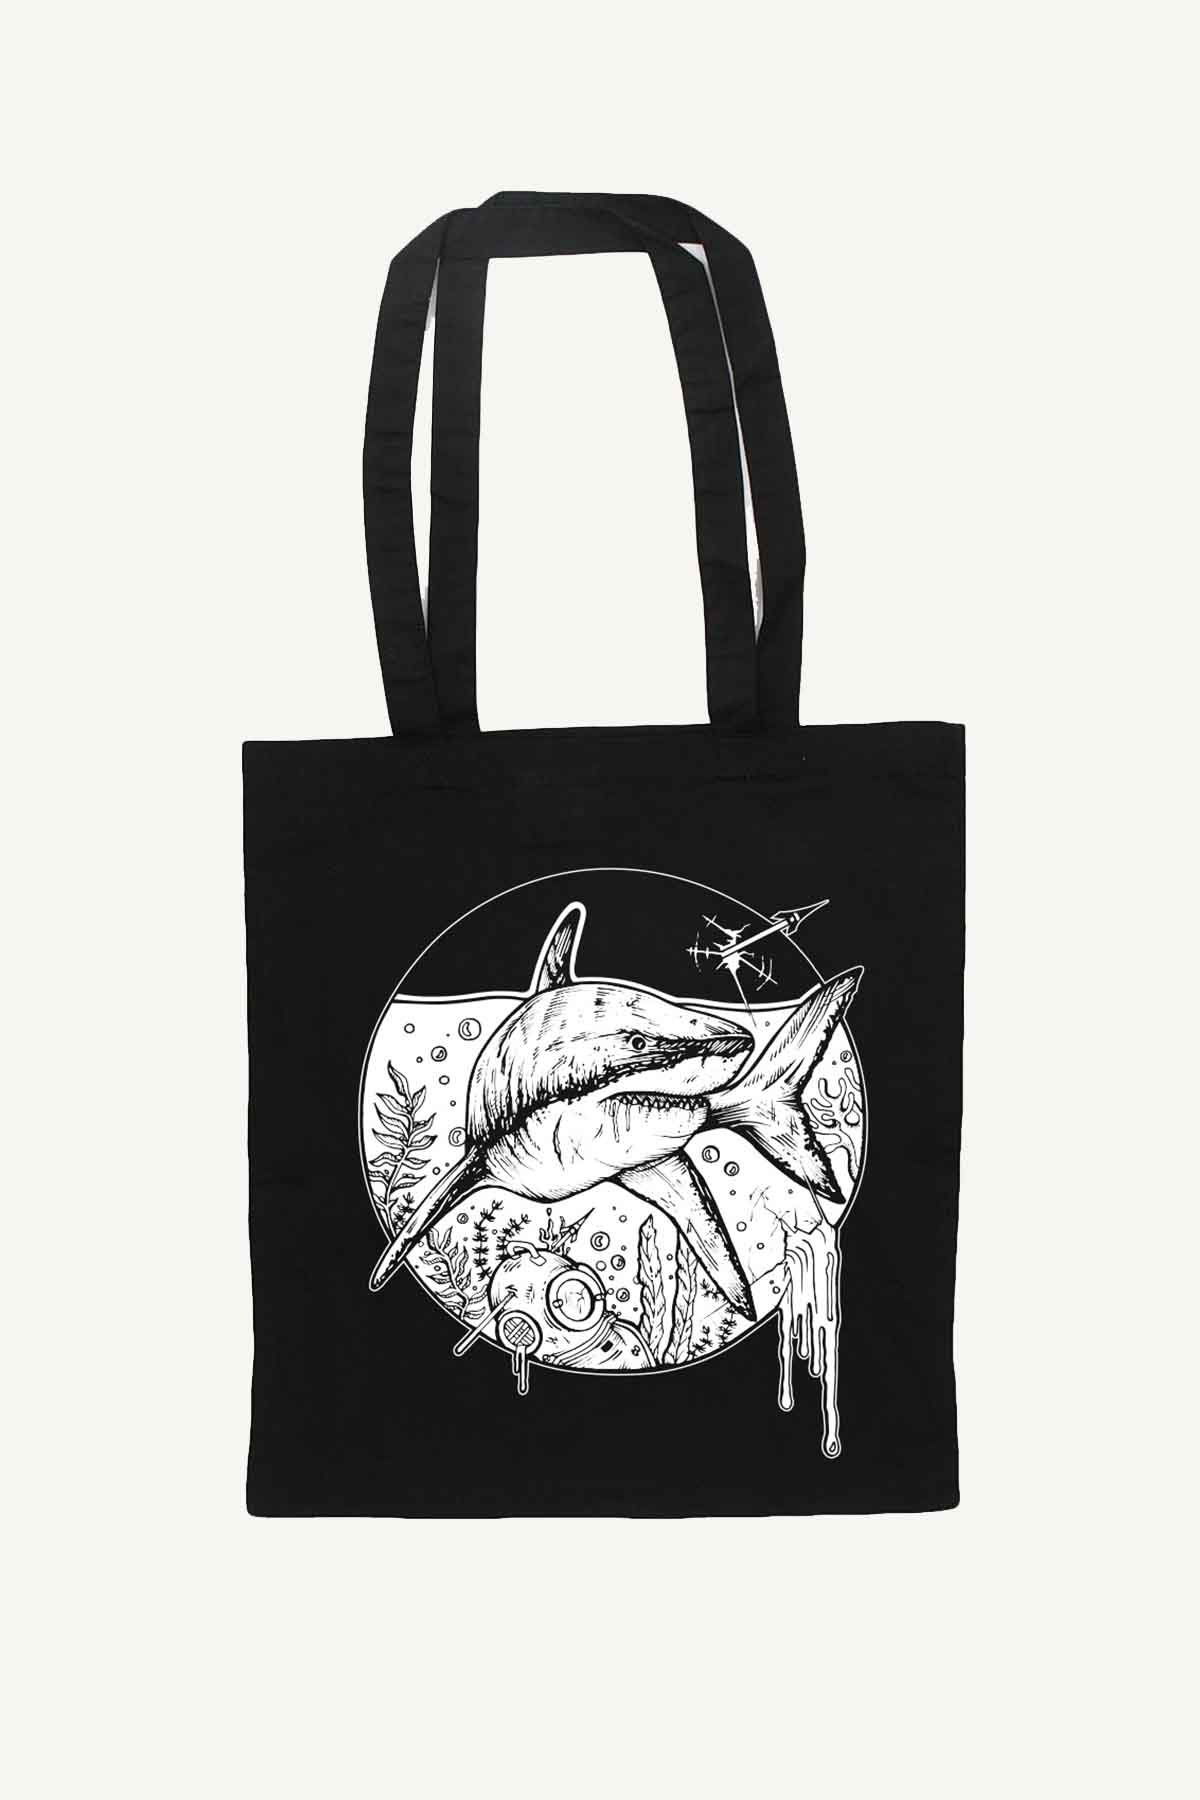 AMITY KILLER TOTE BAG